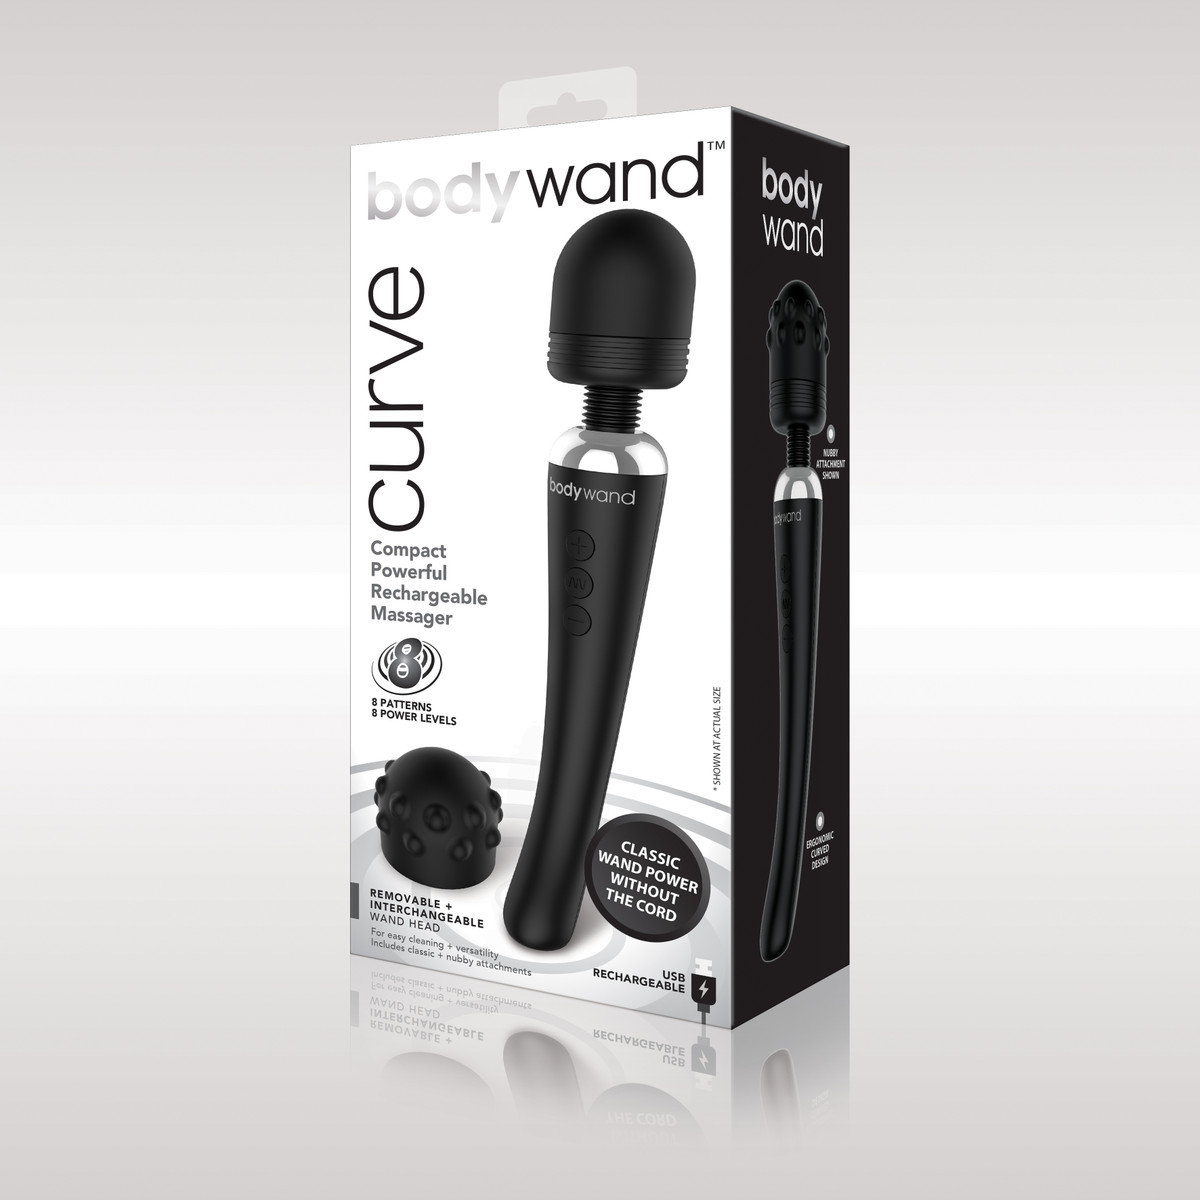 Bodywand Curve Rechargeable Wand Massager Black BW151 848416003853